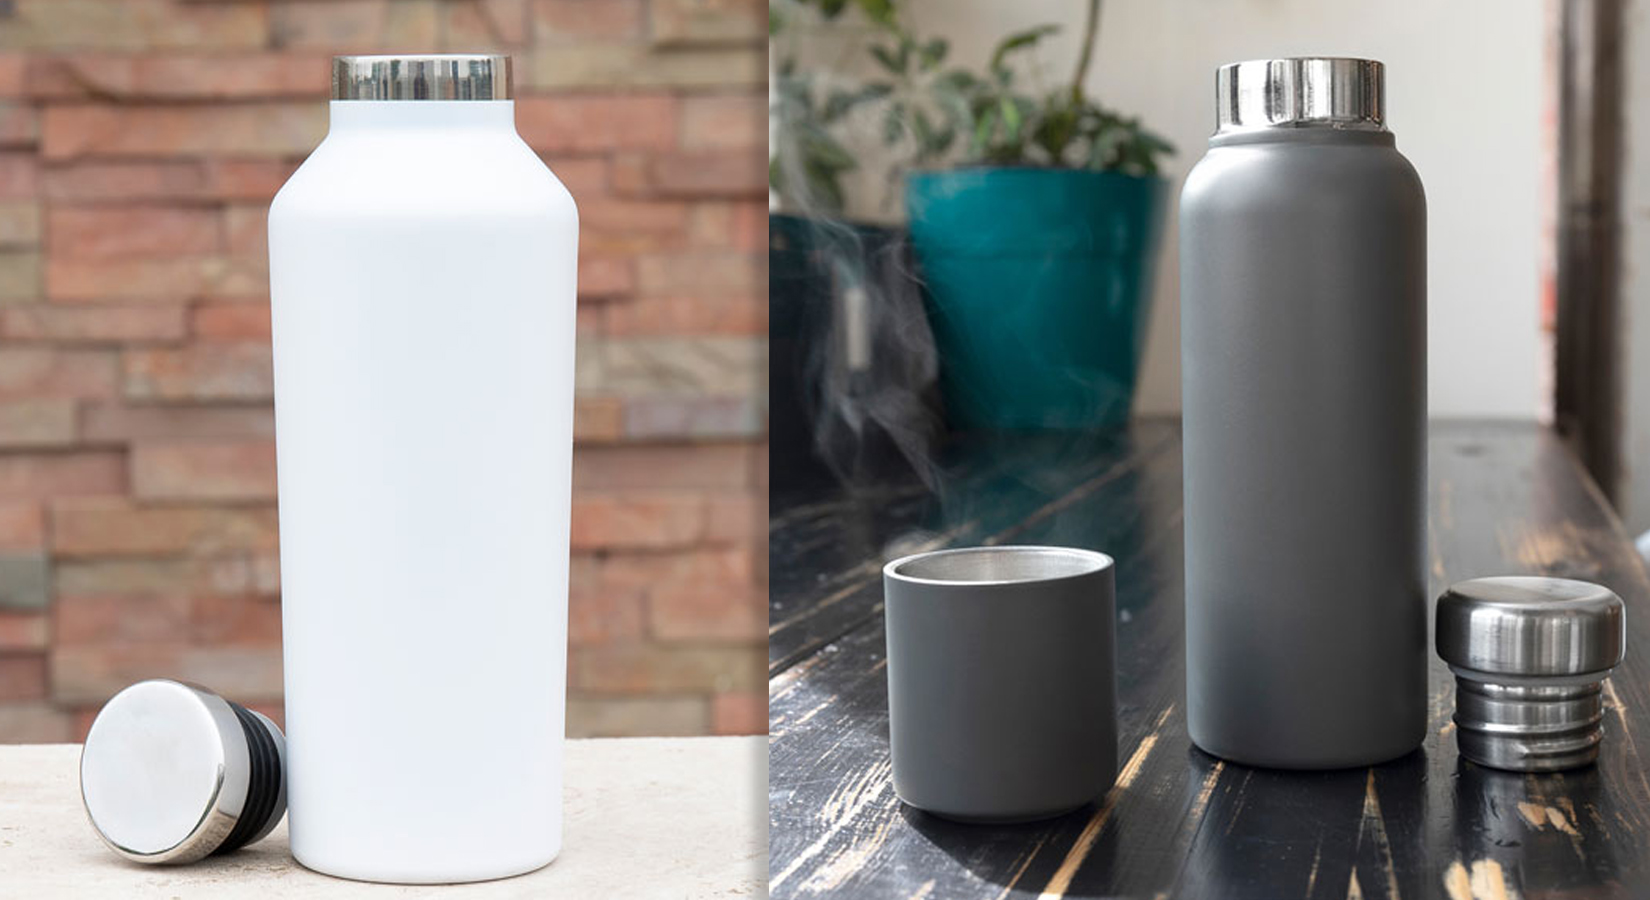 7 New Drinkware Styles & Stainless Steel Straws Releasing This OCTOBER!